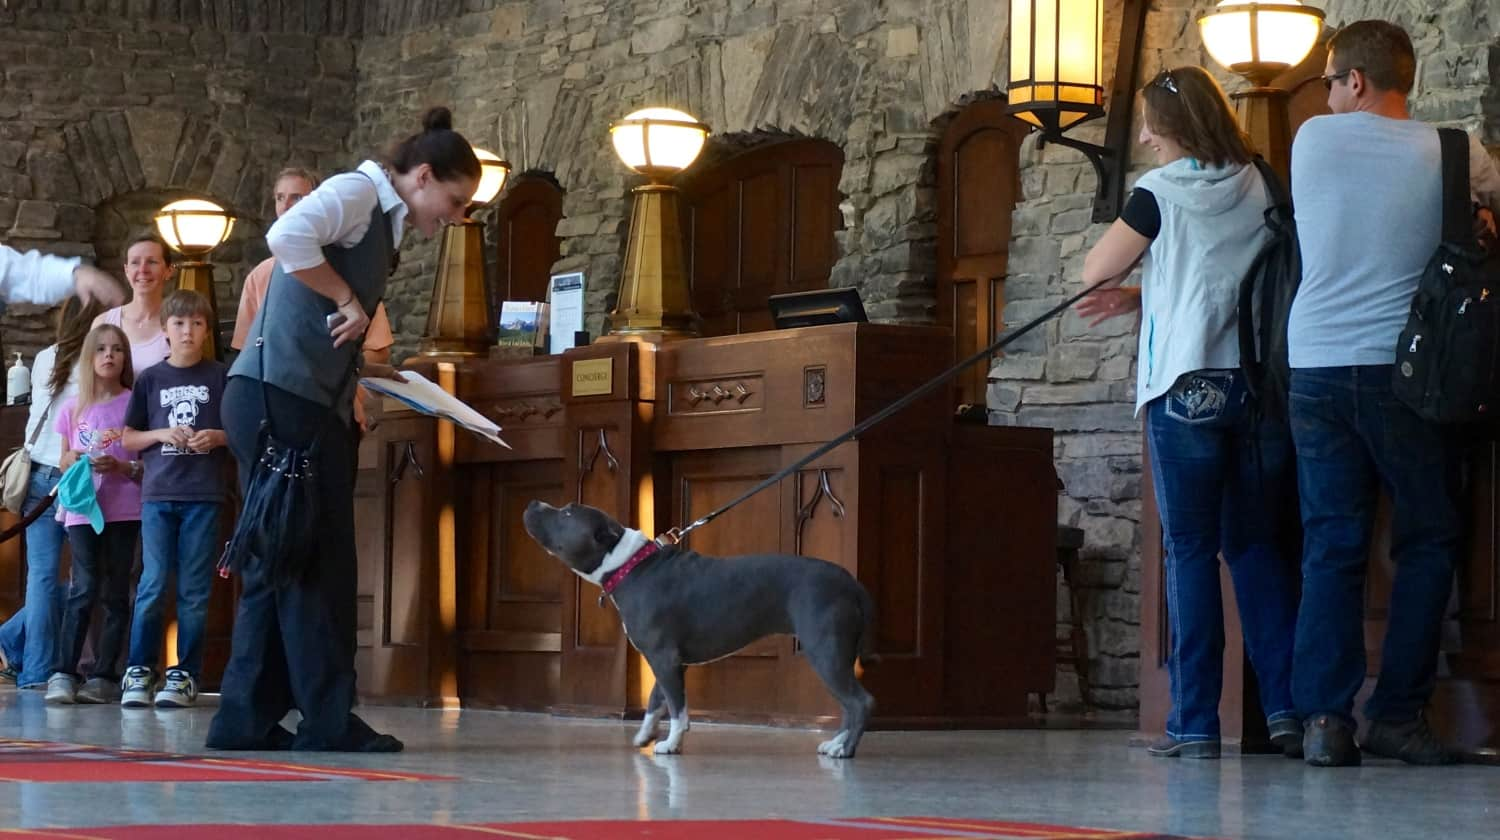 Pit bull at the Fairmont Banff Springs - Banff, AB